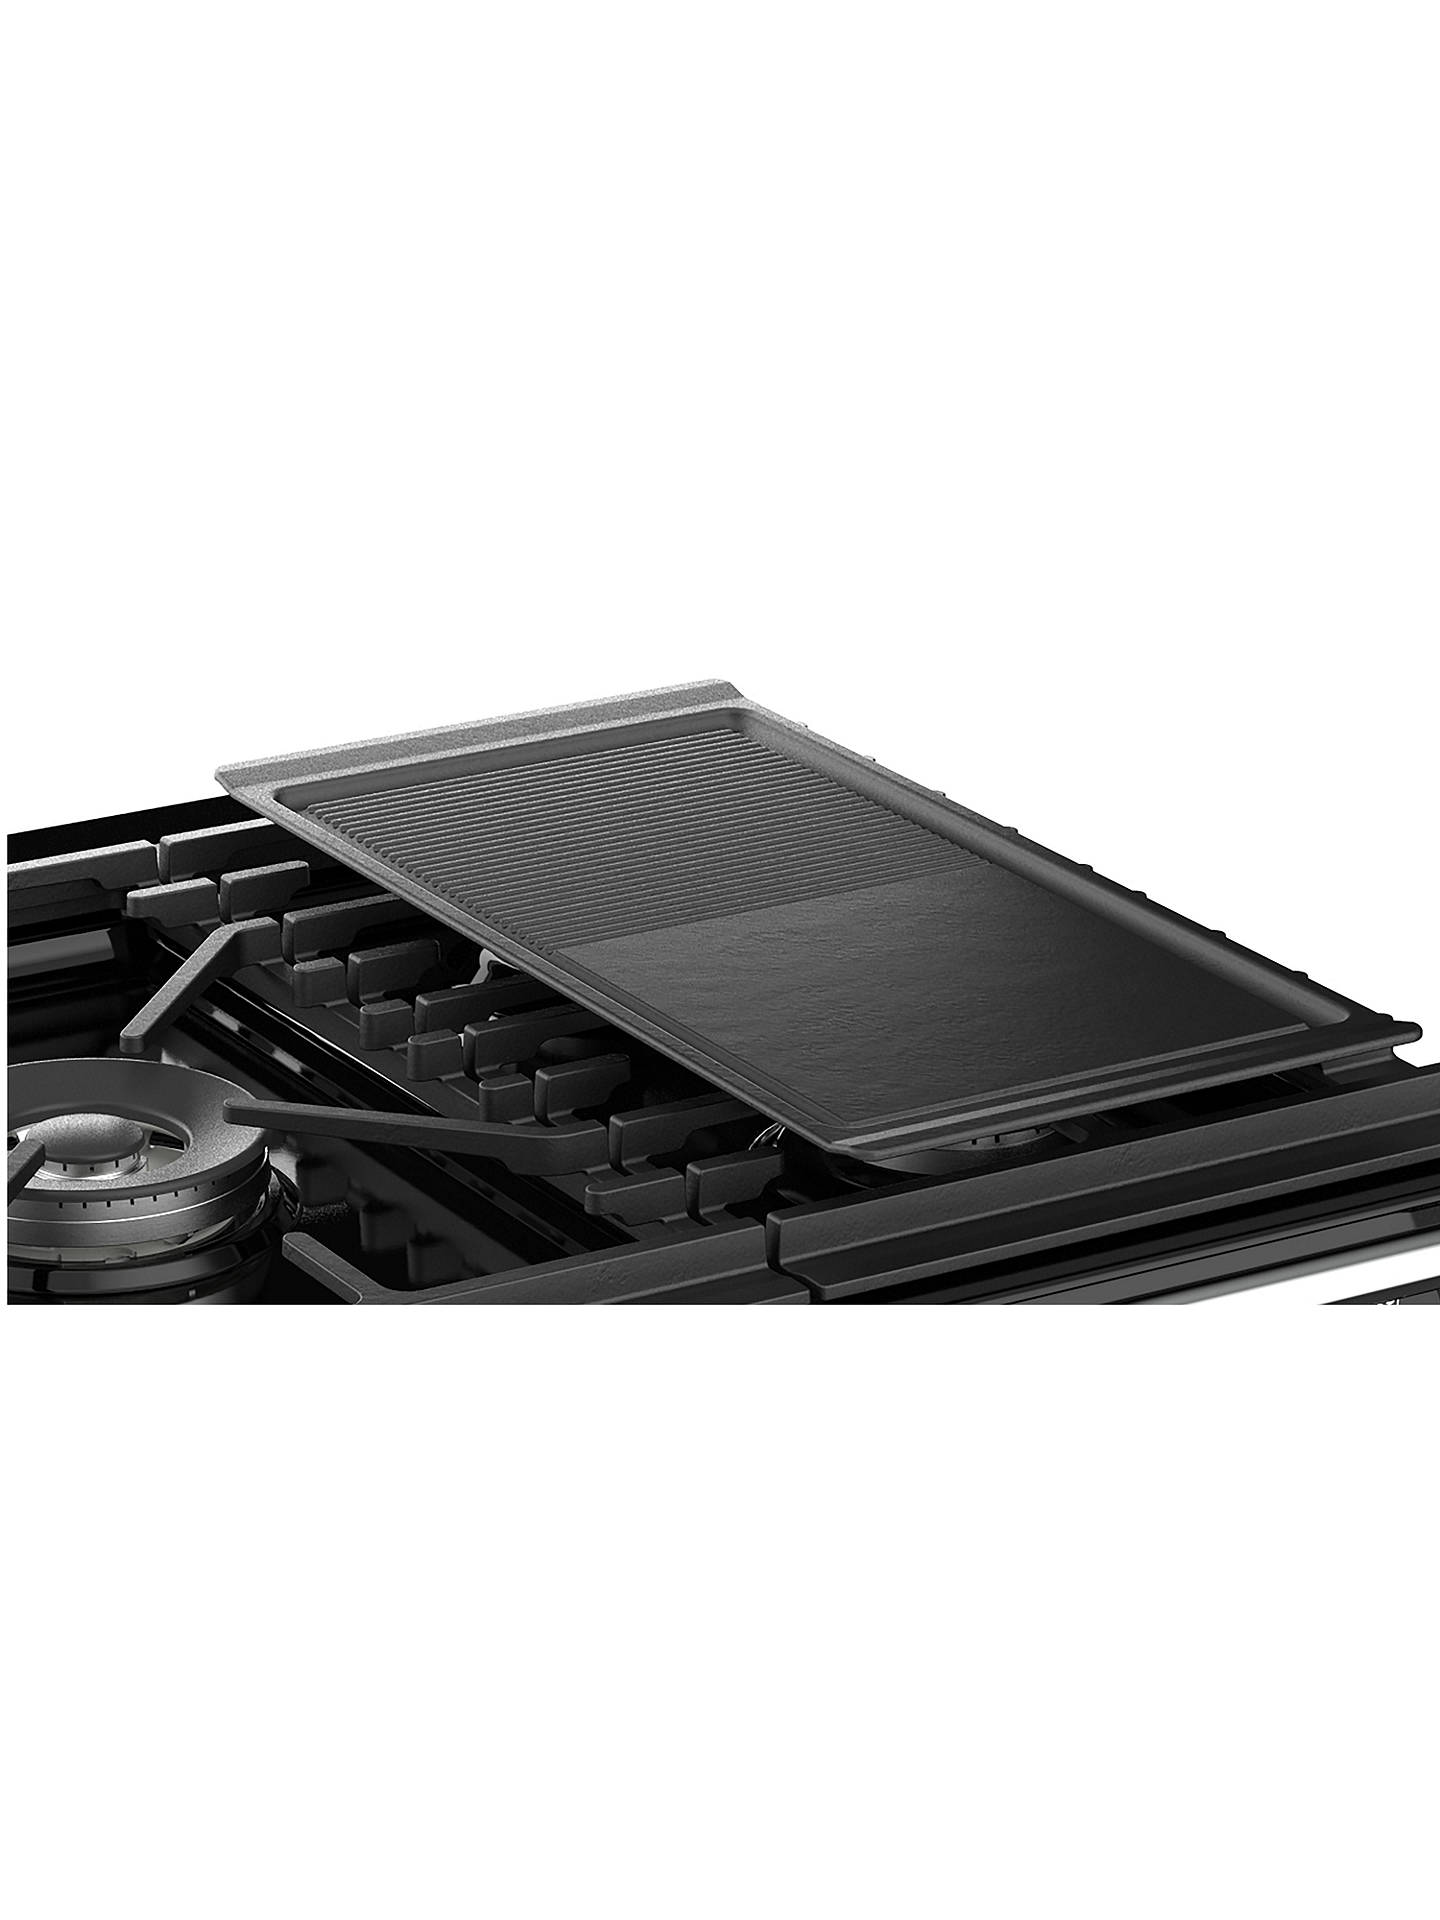 BuyStoves Richmond Deluxe S1000G Gas Range Cooker, Black Online at johnlewis.com